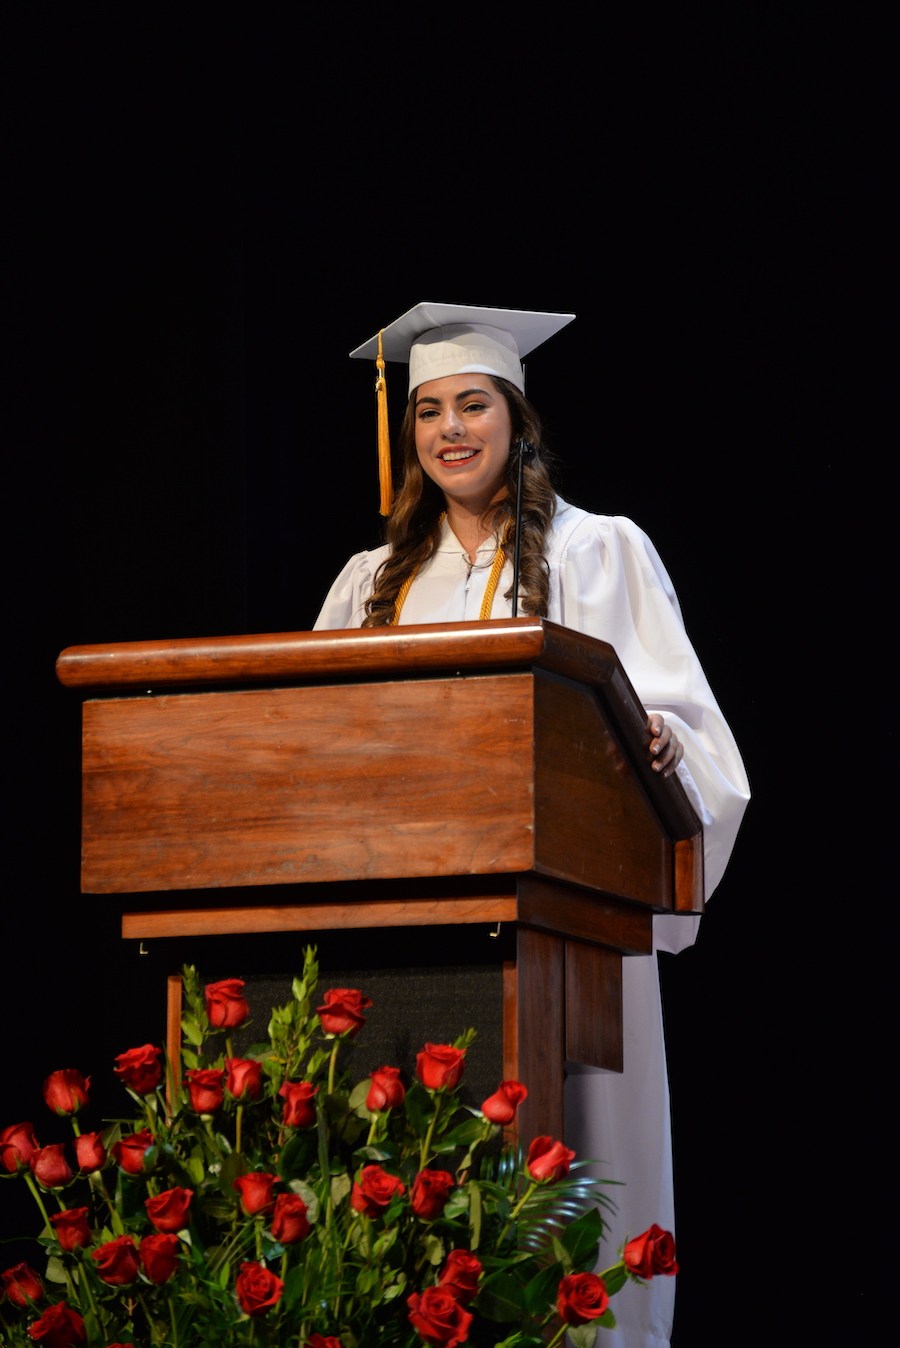 Taulbee will be attending the University of Virginia in the fall.